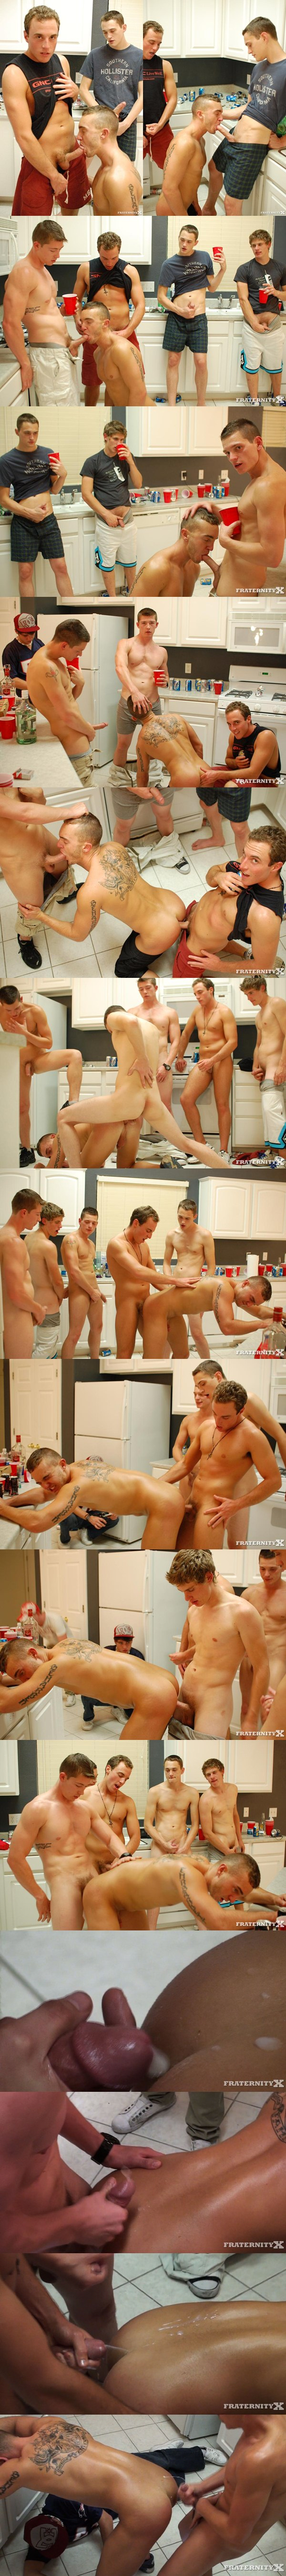 Grant gets bareback gangbanged and creampied by five college dudes in 5 Dudes 2 Holes at Fraternityx 01